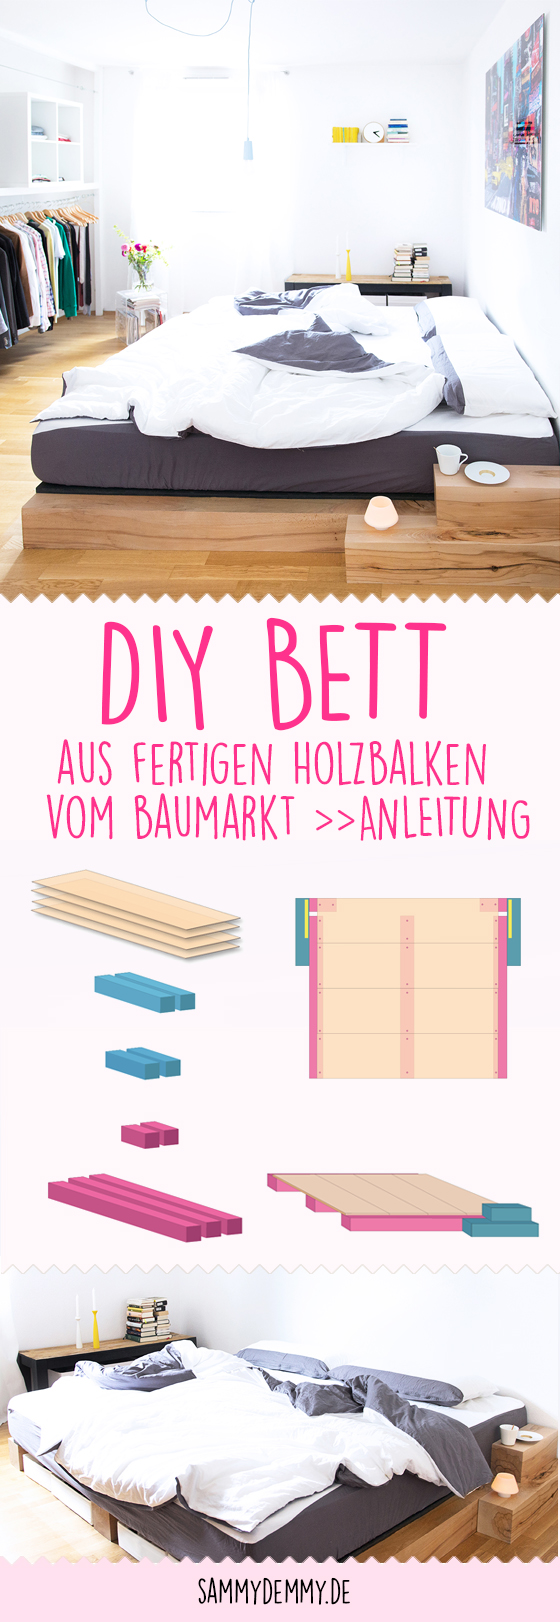 diy bett gallery of bett selber bauen ikea hack diy hochbett aus by nele robsi with diy bett. Black Bedroom Furniture Sets. Home Design Ideas